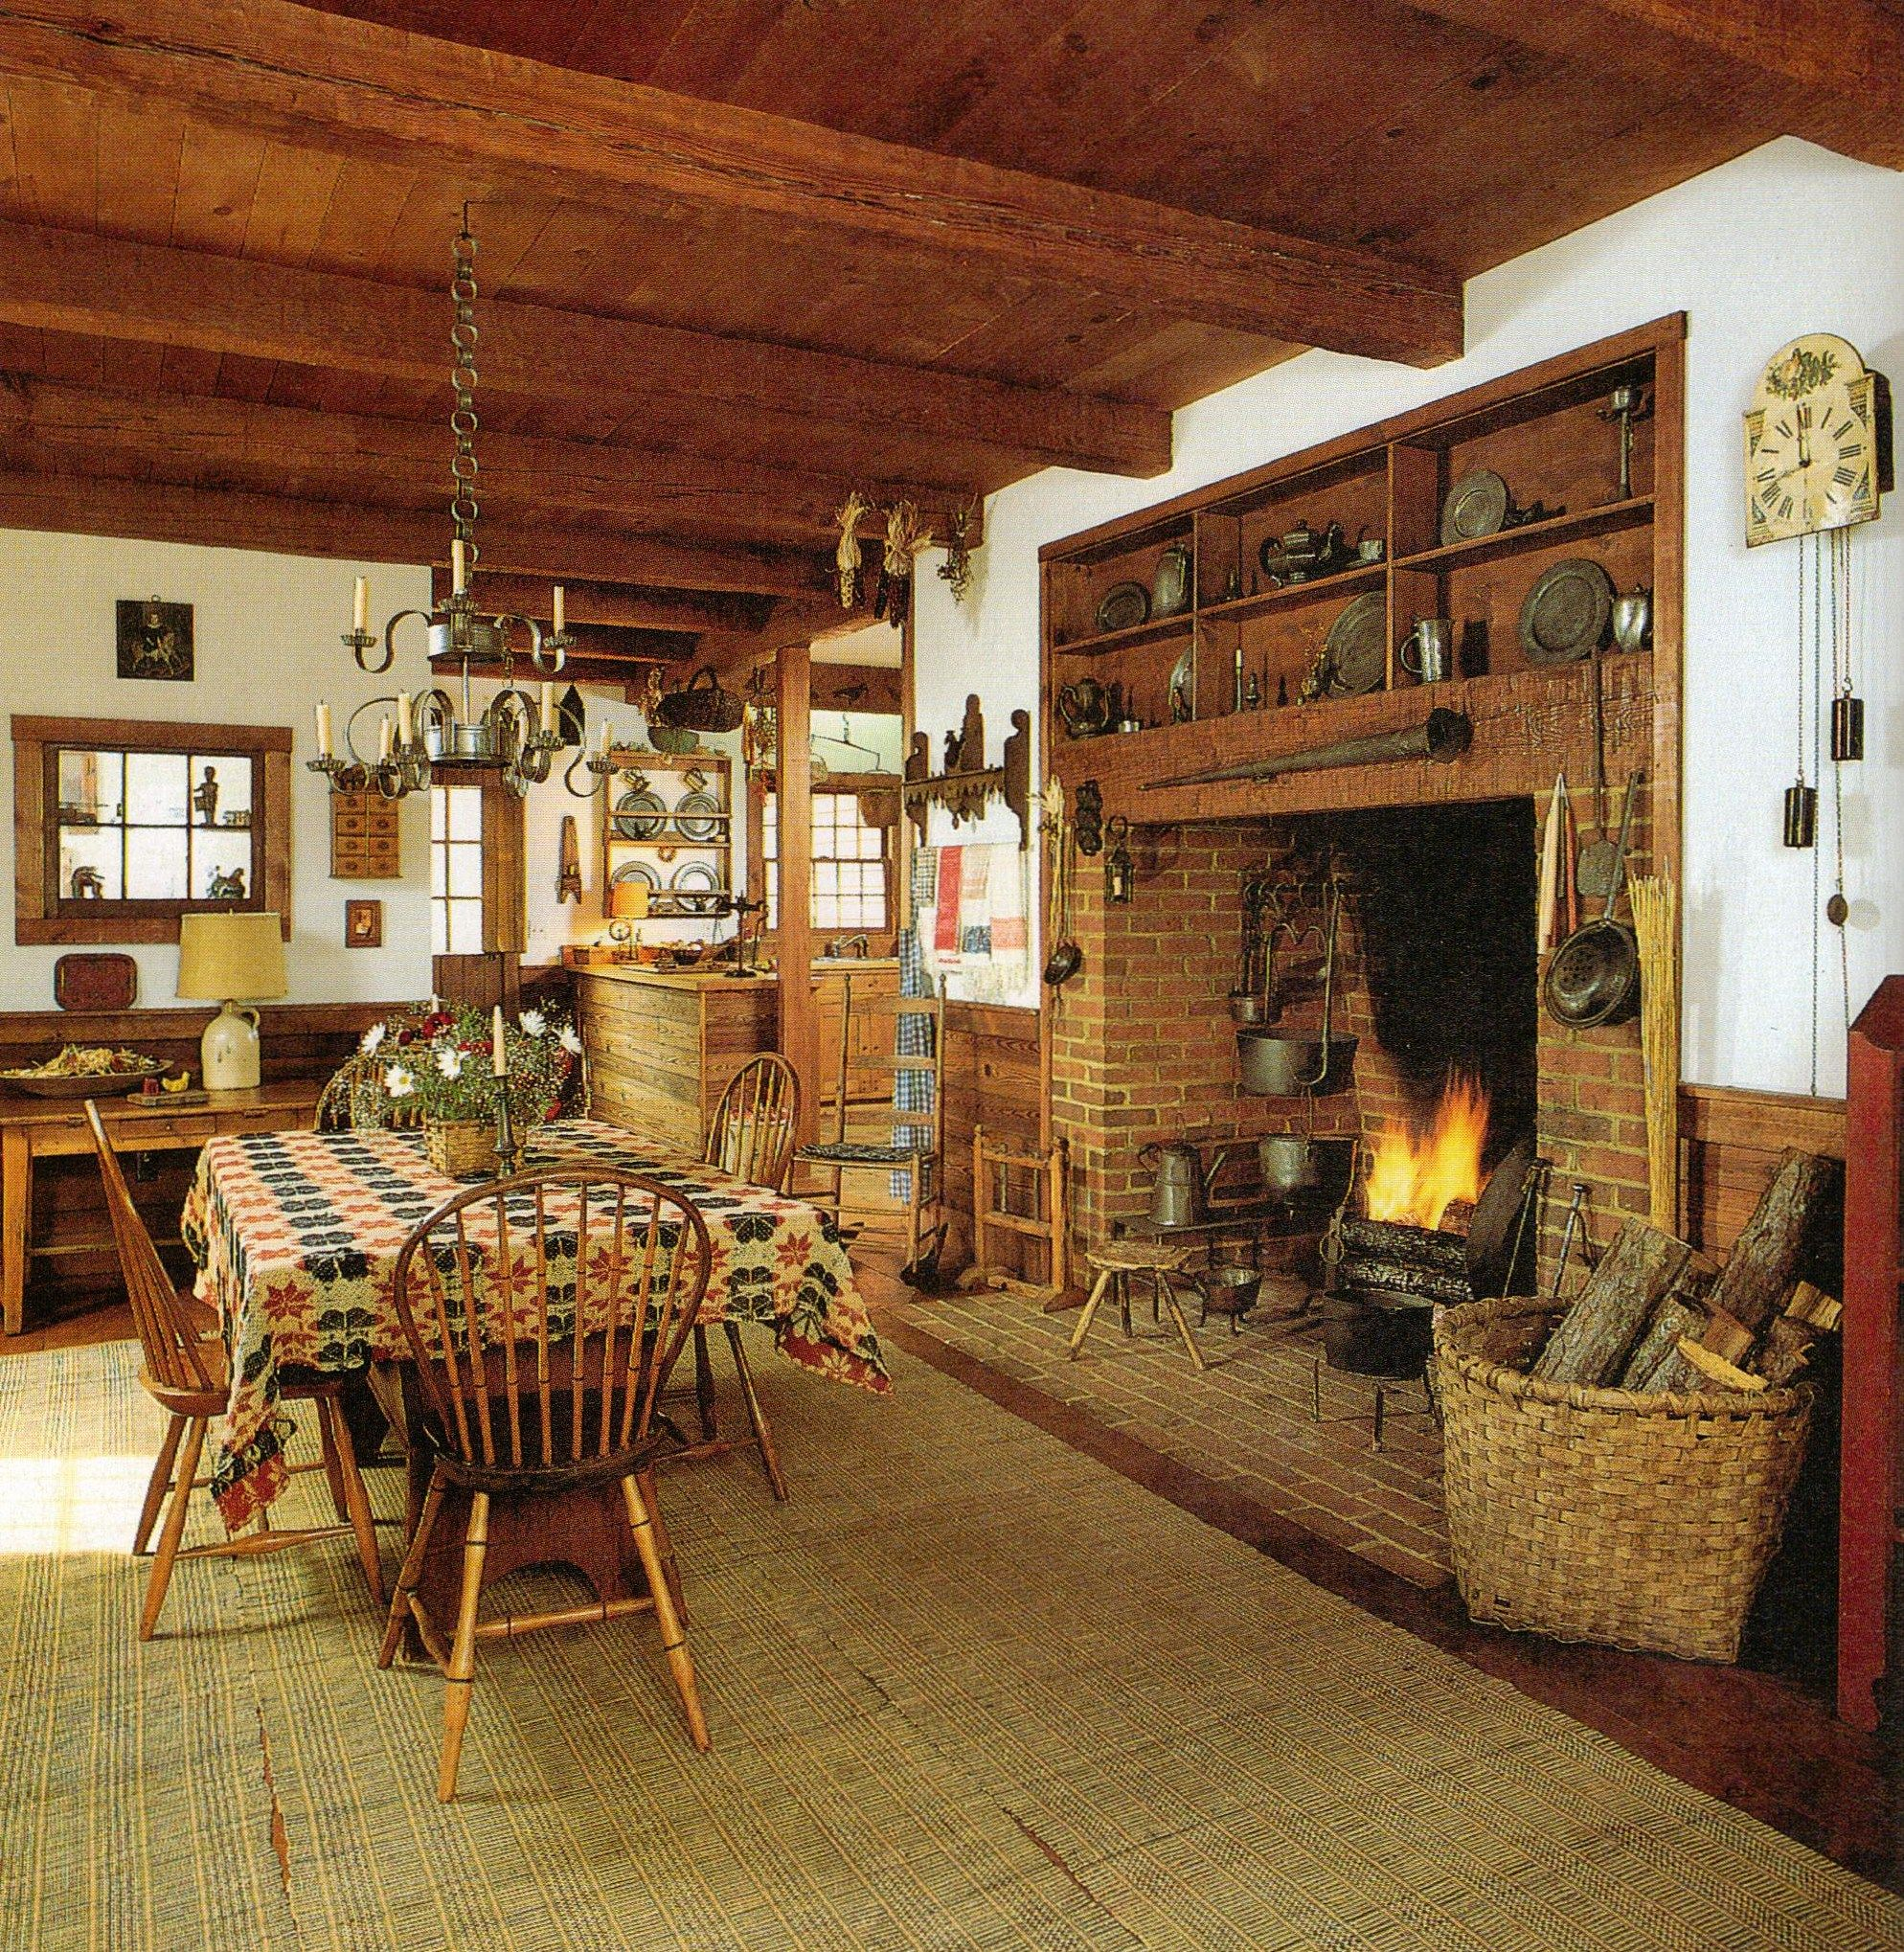 Wonderful Fireplaces In The Dining Room For Cozy And Warm: My Kind Of Hearth.....warm And Cozy